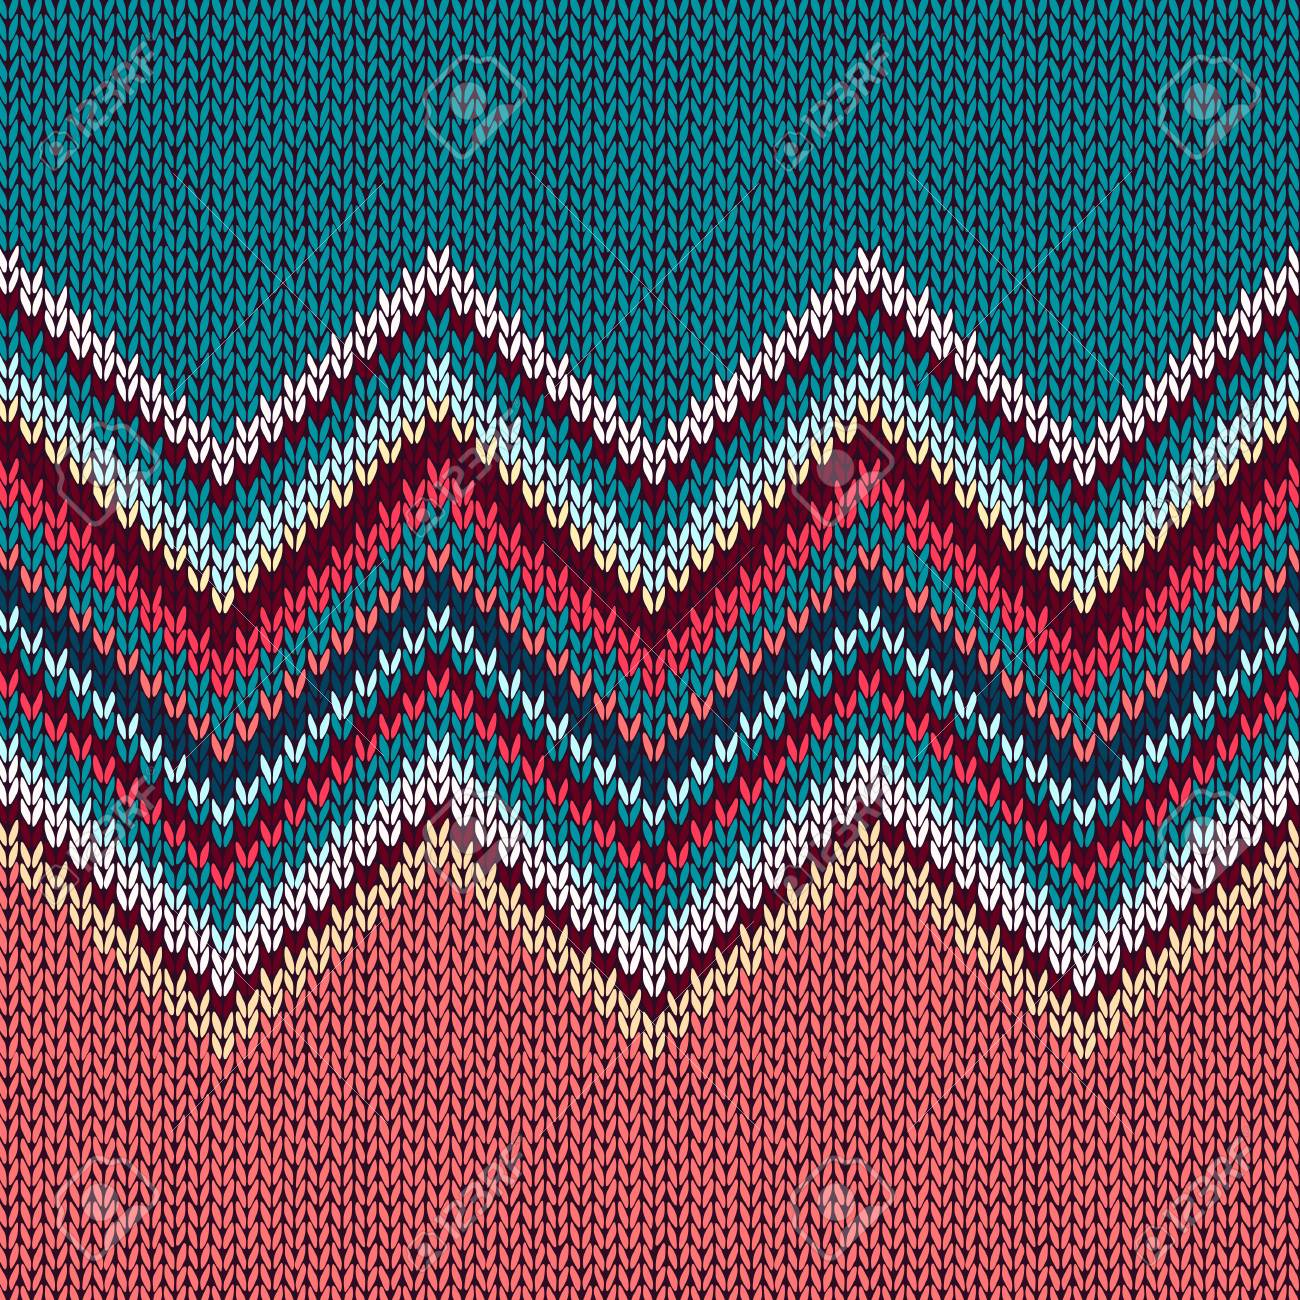 Seamless Knitting Christmas Pattern With Wave Ornament In Red ...